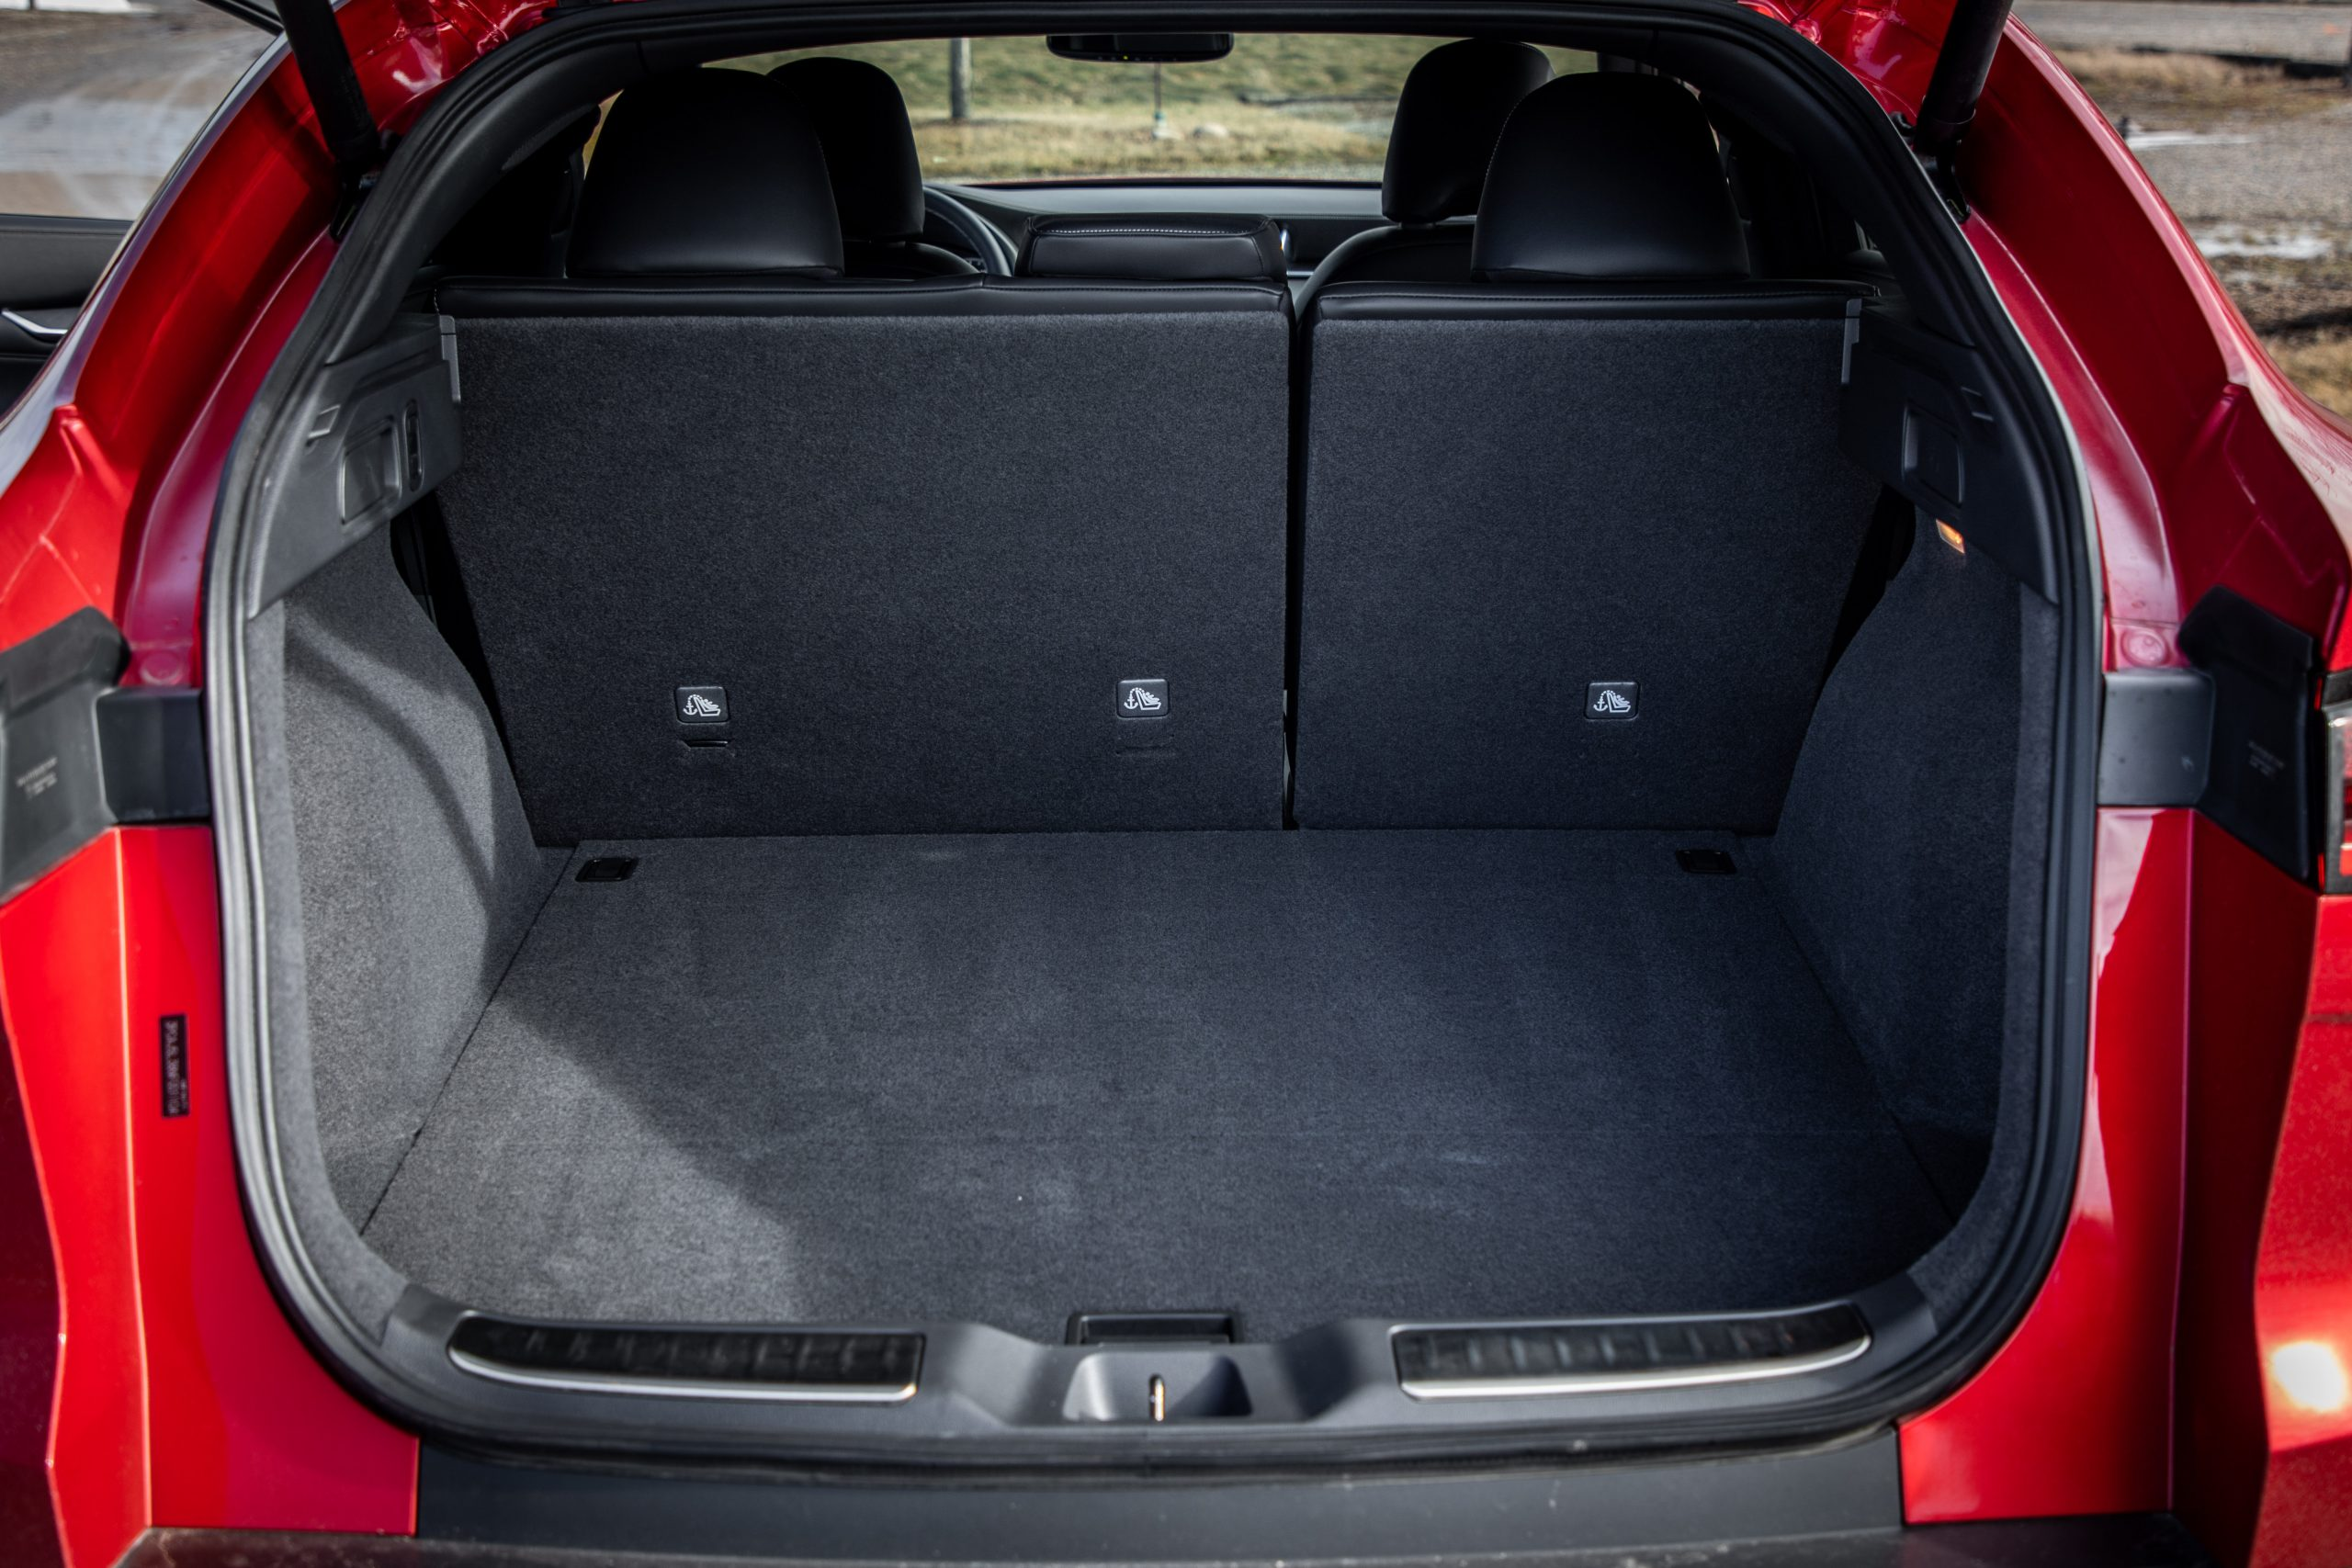 2022 Infiniti QX55 interior rear hatch trunk